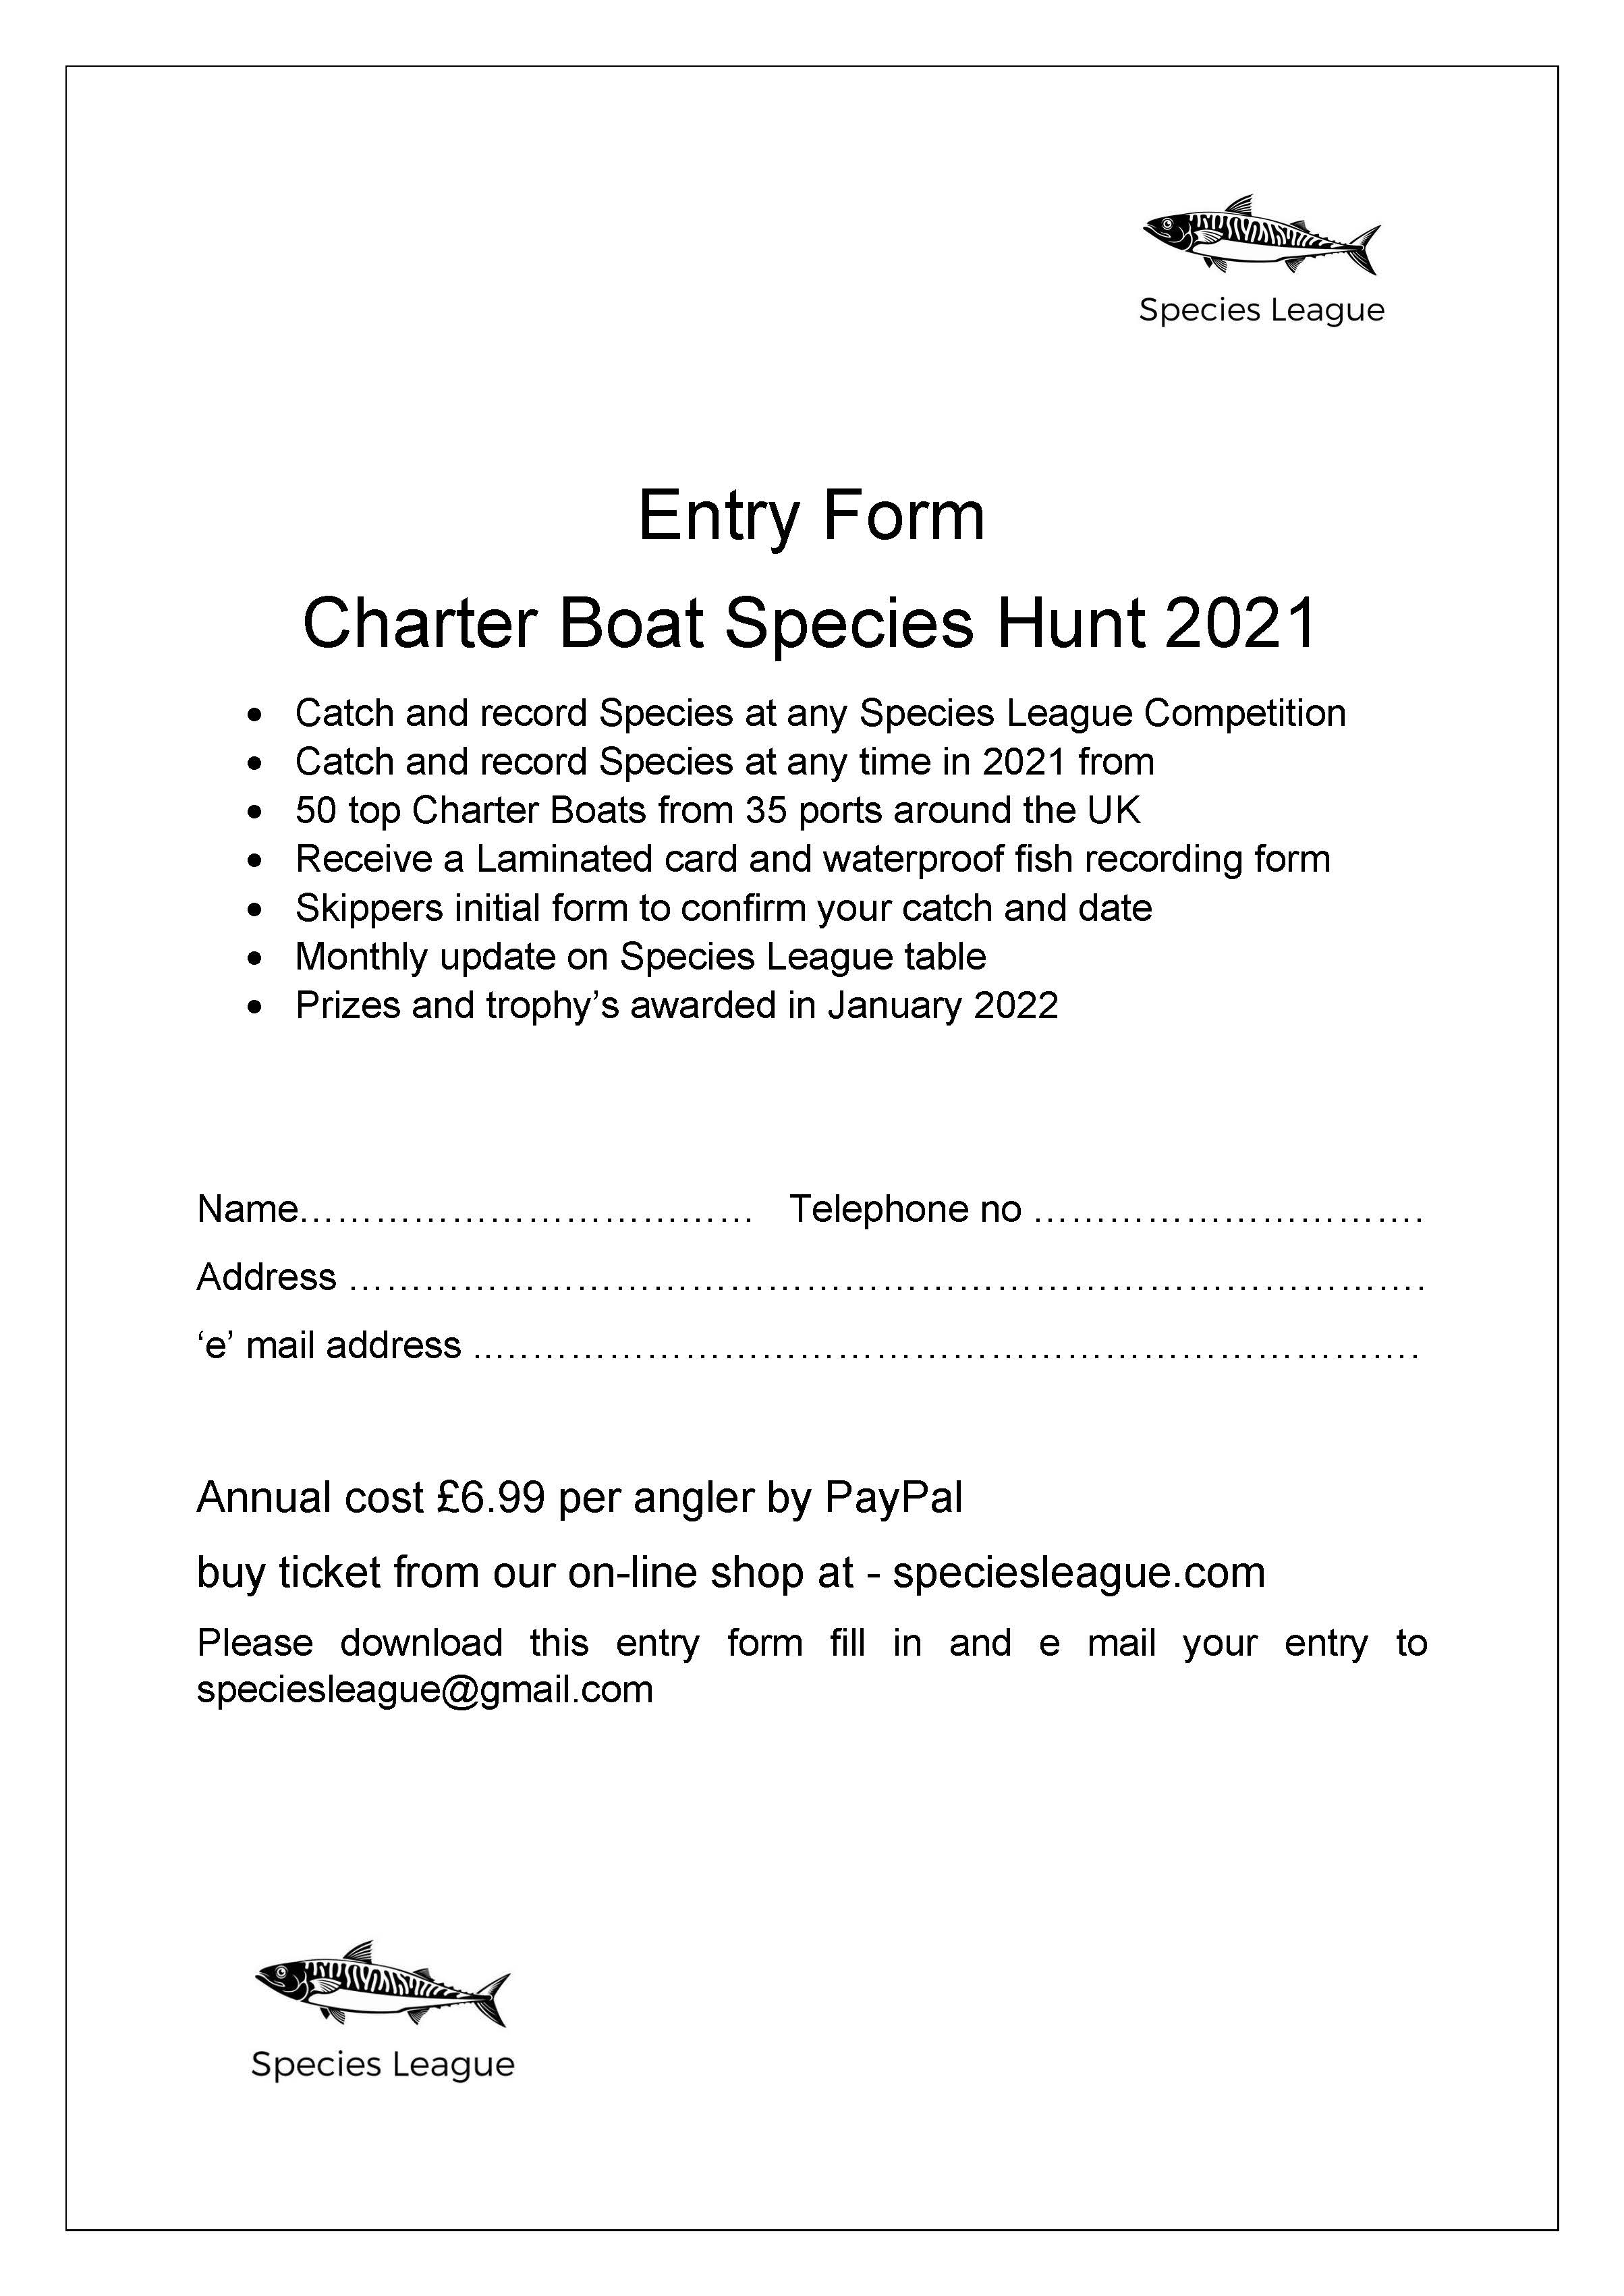 charter-boat-species-hunt-2021-entry-form-3